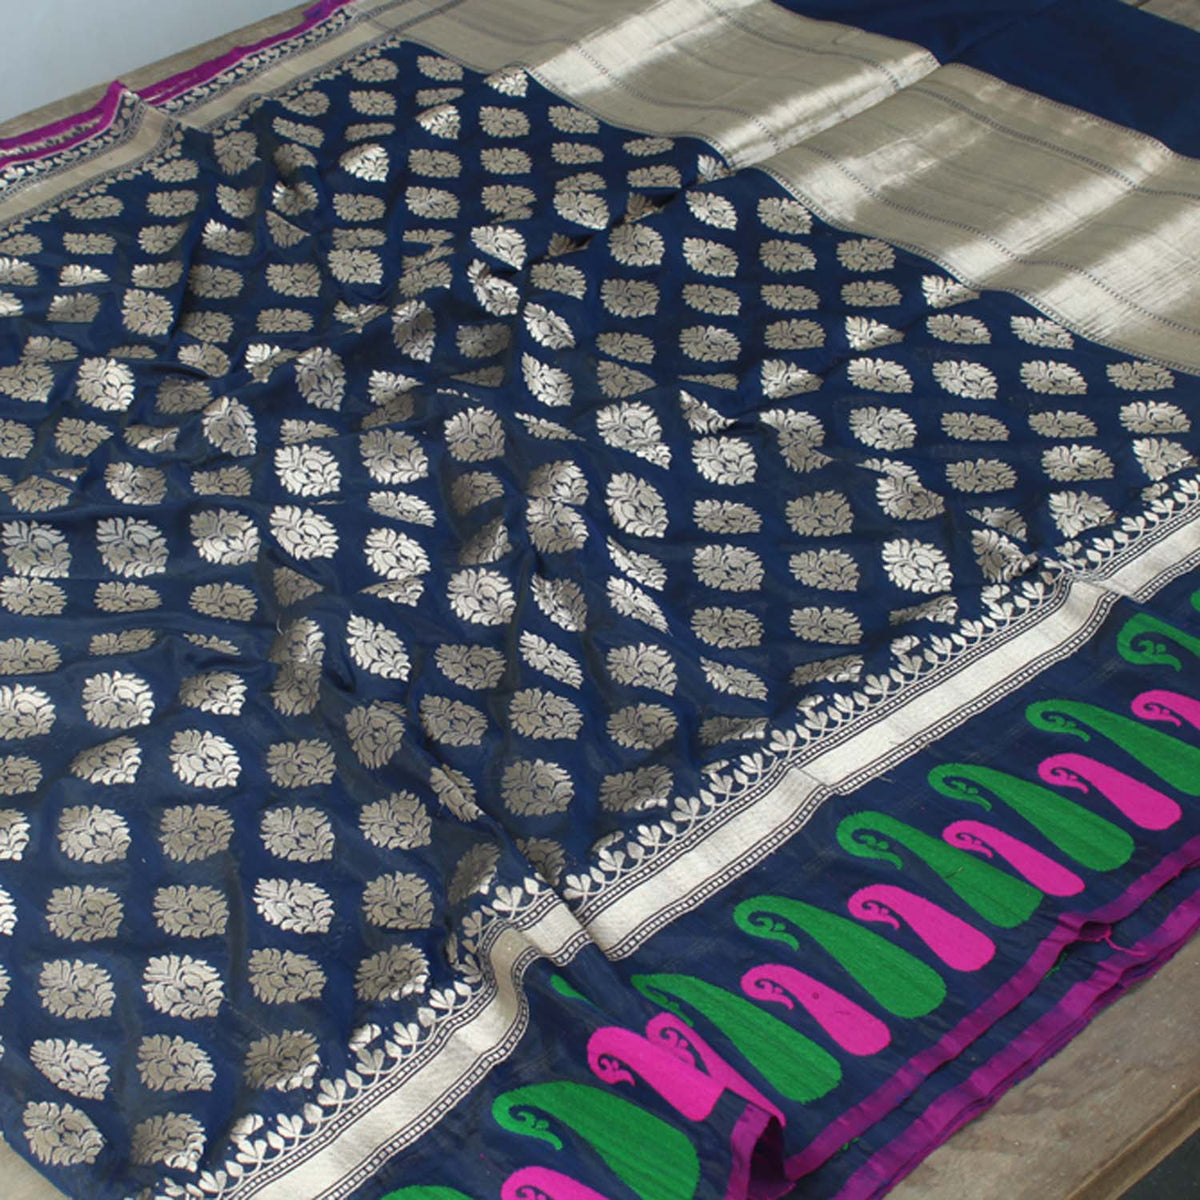 Black-Navy Blue Pure Silk Georgette Banarasi Handloom Saree - Tilfi - 2